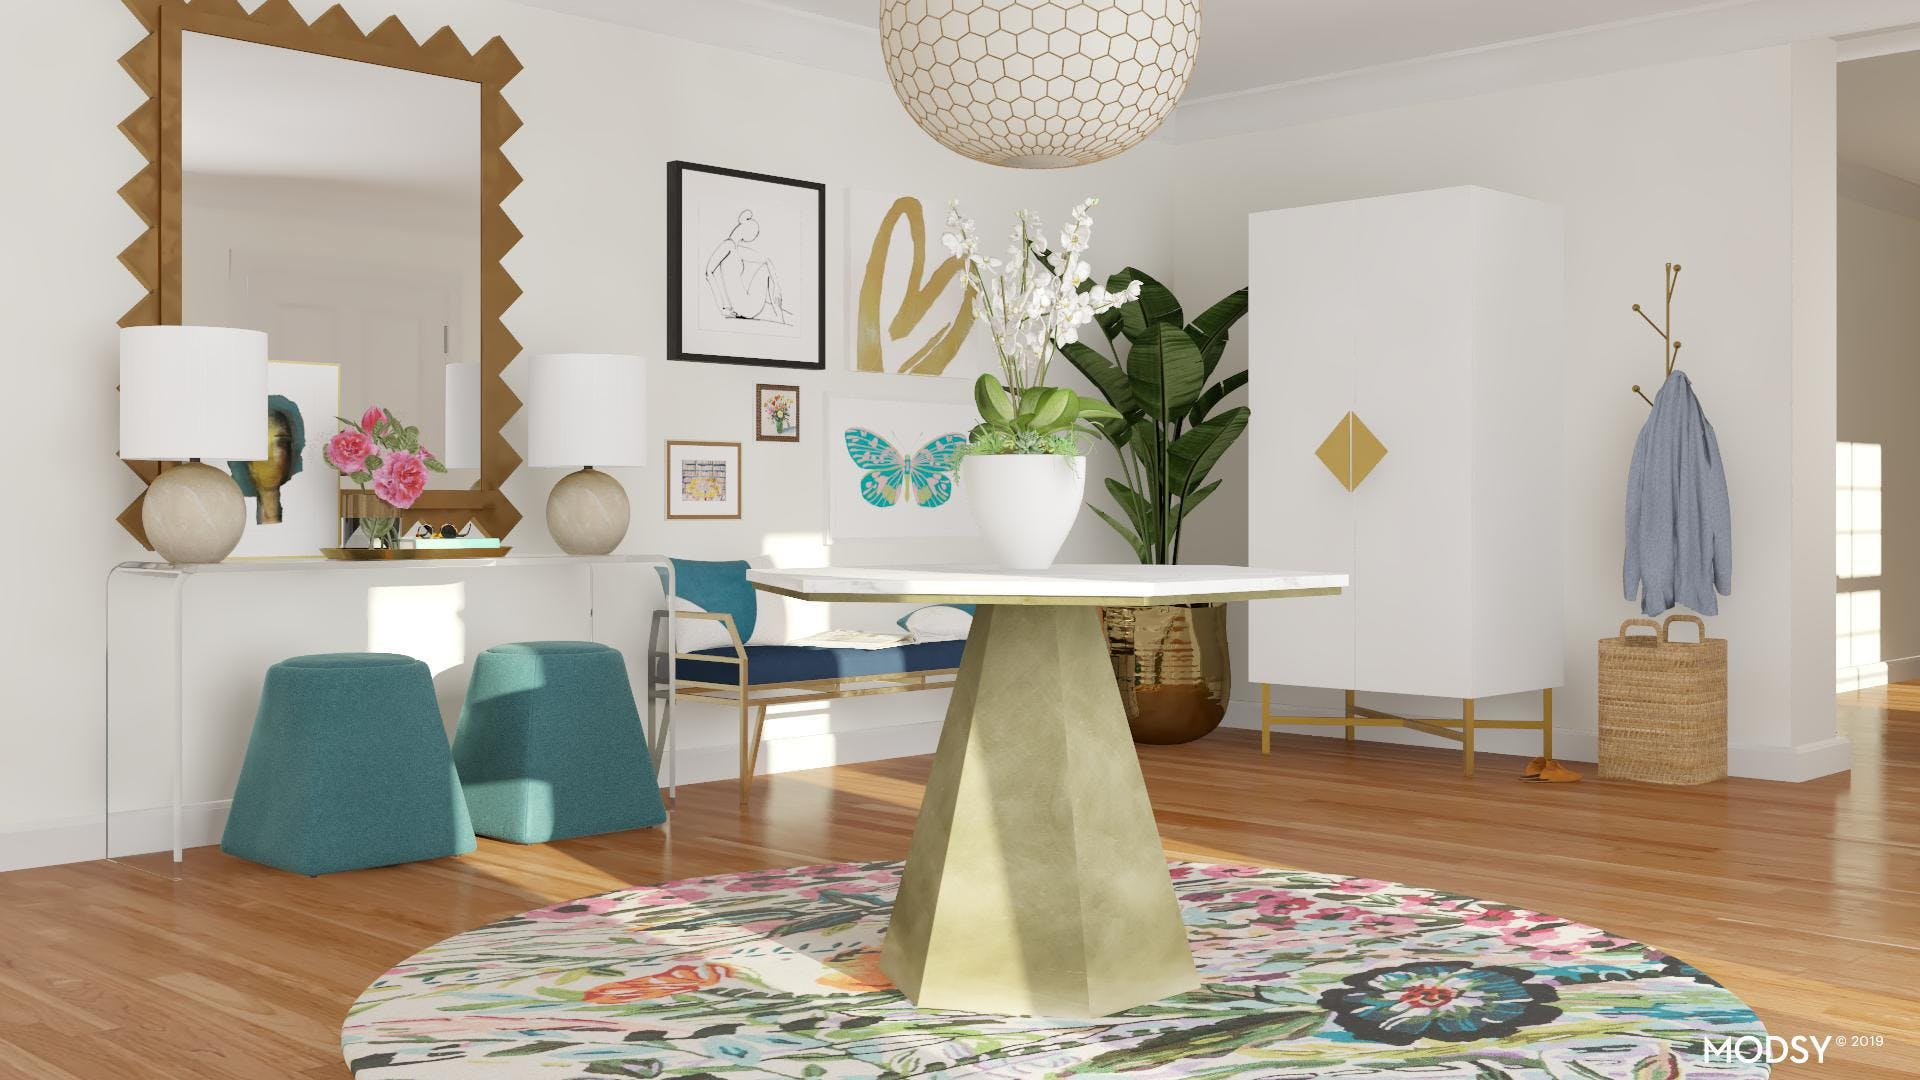 Oversized Decor: Making The Space